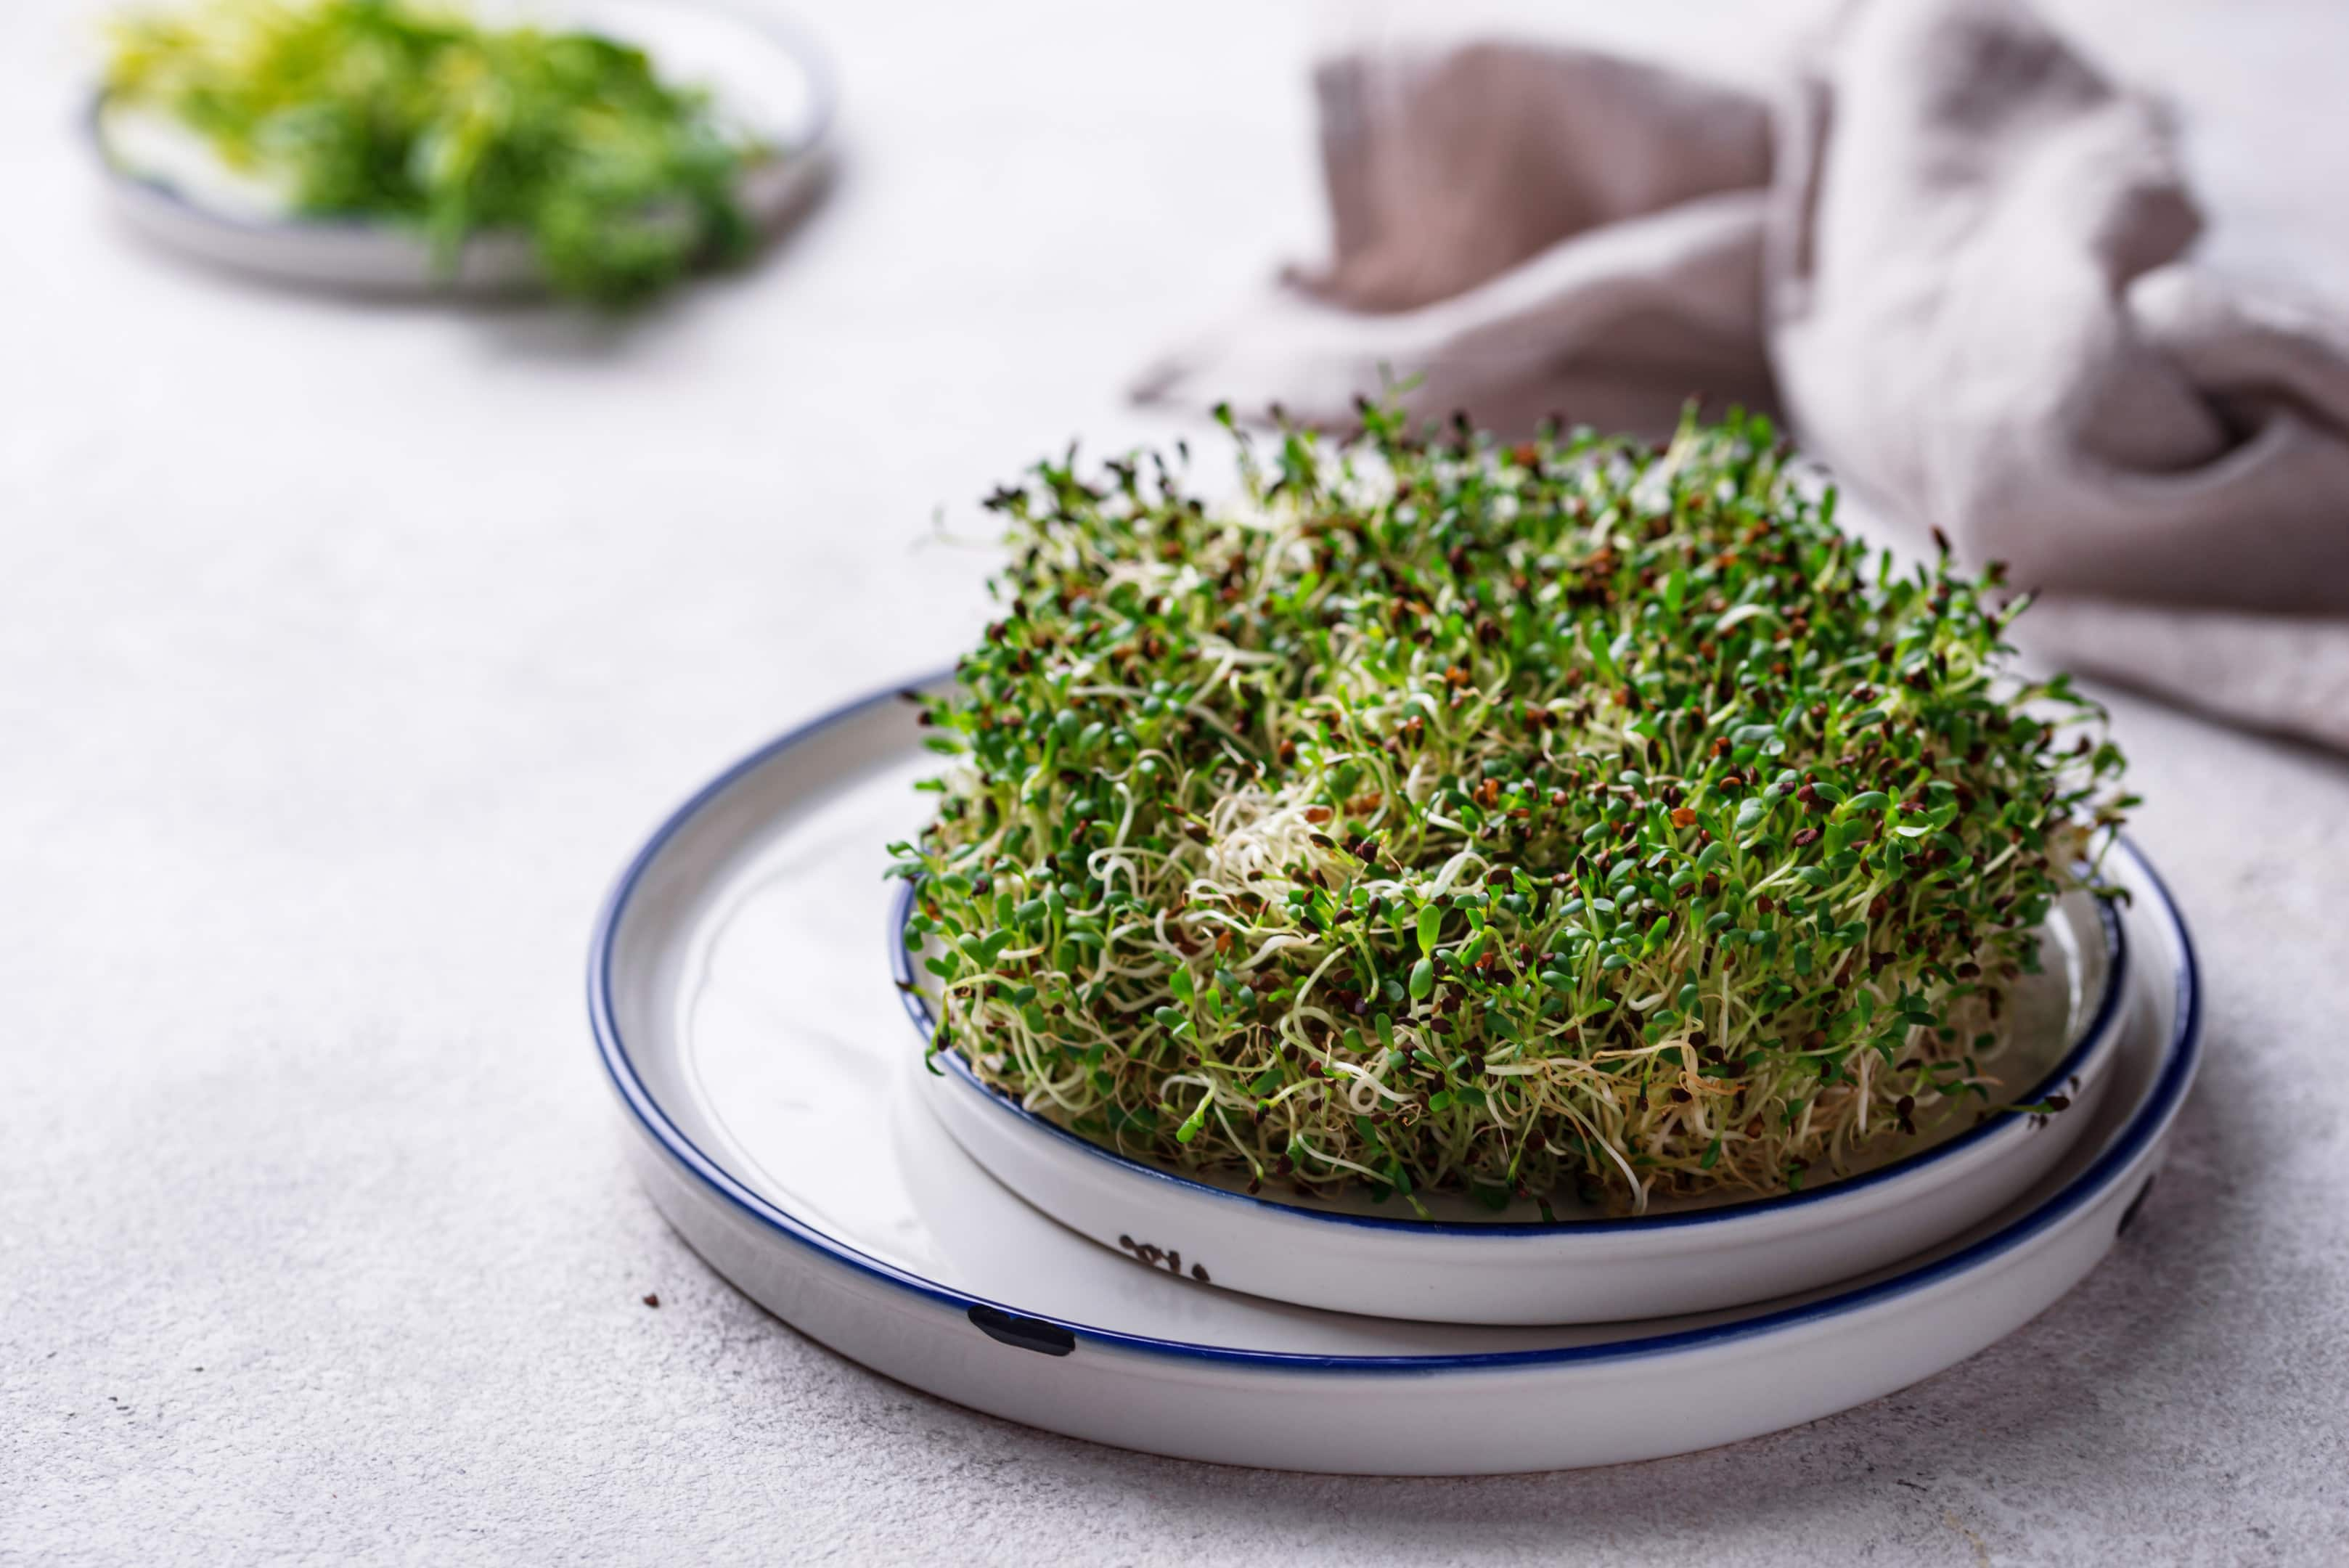 Microgreen sprouts alfalfa on plate